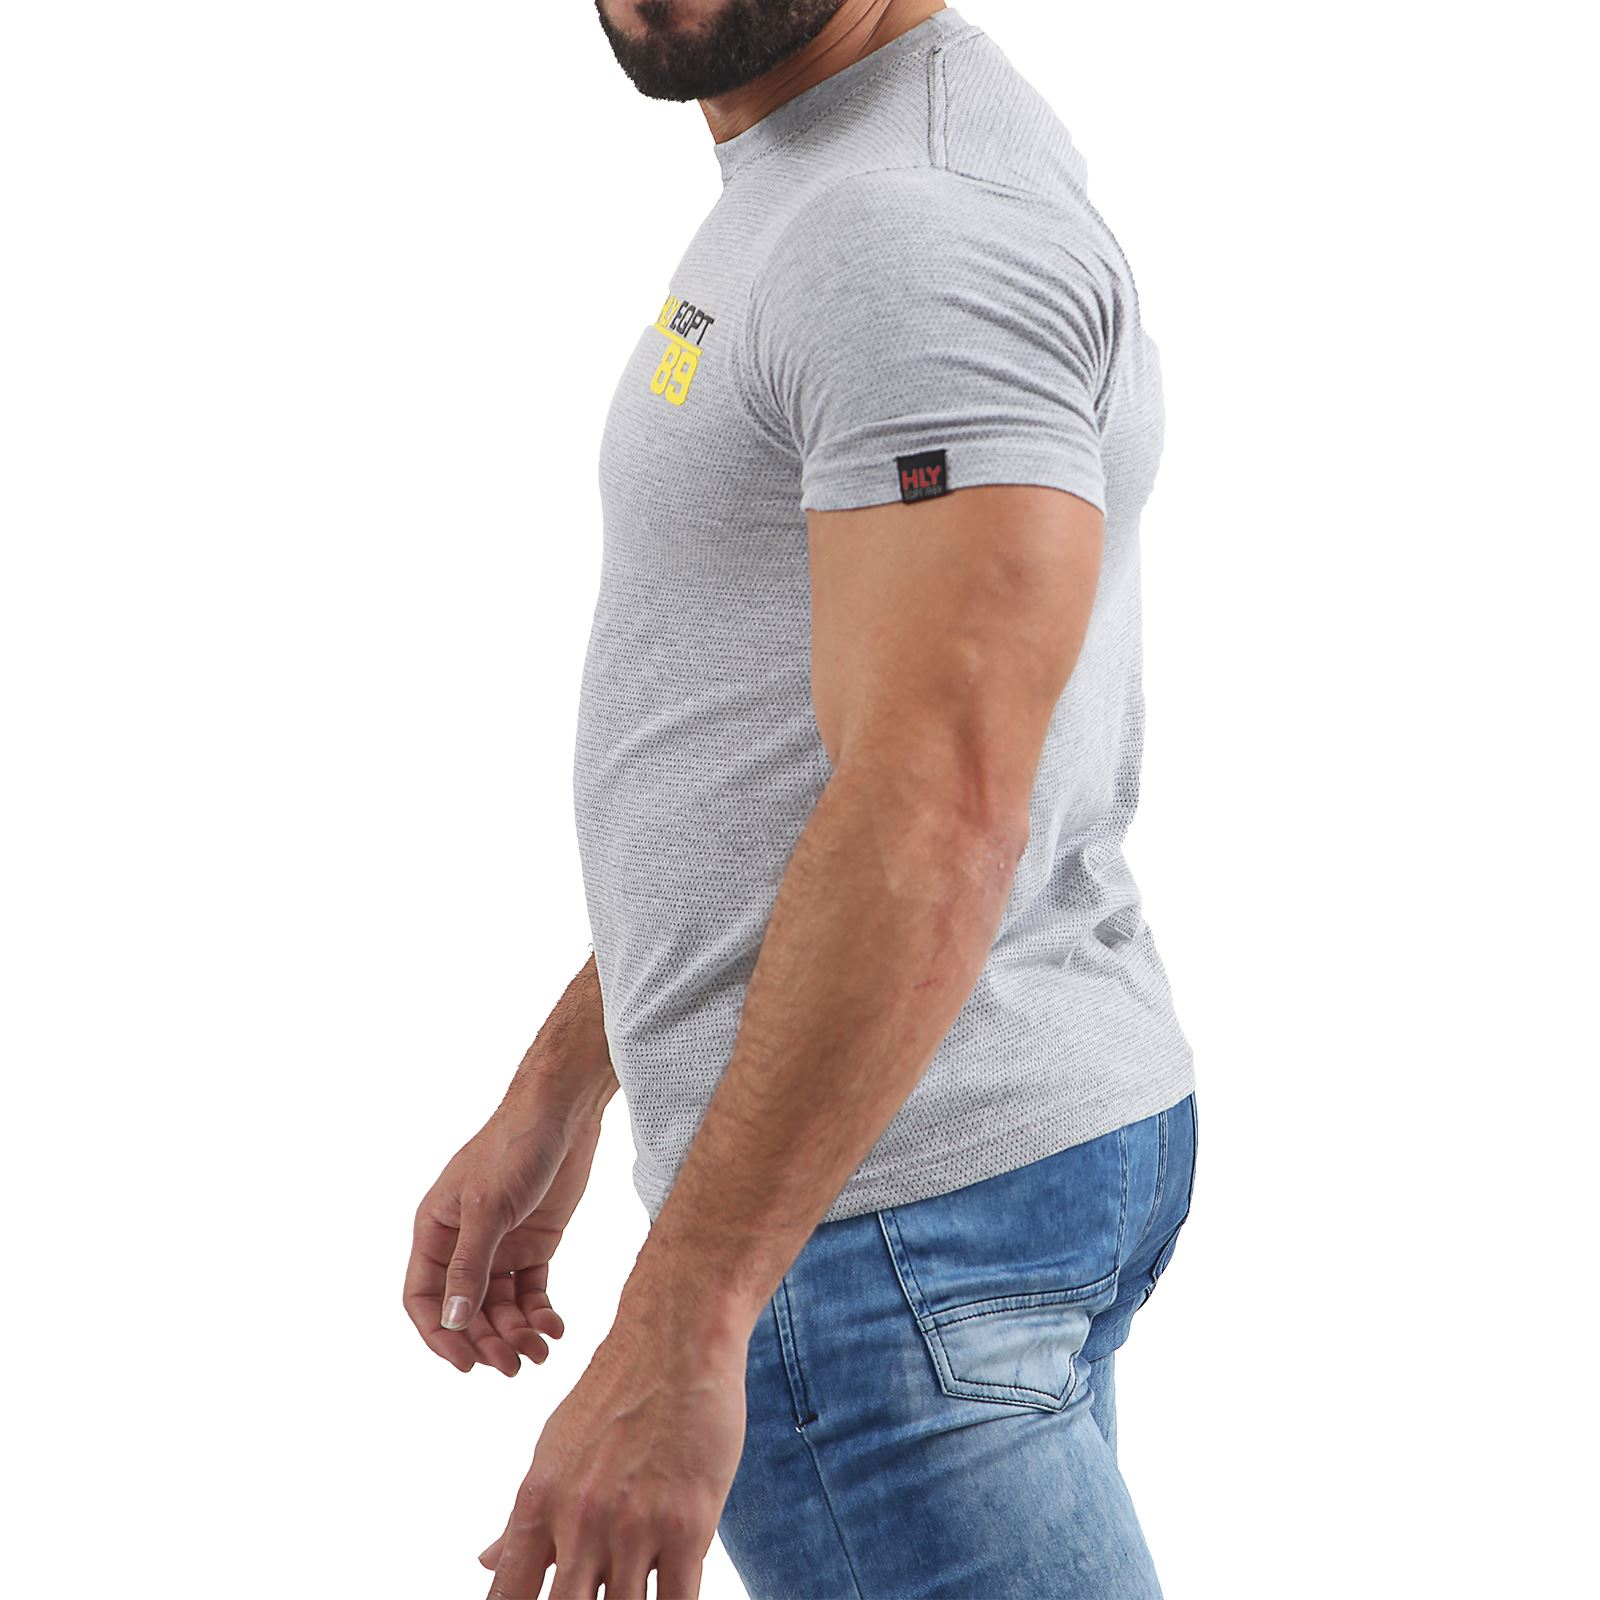 Mens-HLY-EQPT-Printed-T-Shirt-100-Cotton-Gym-Athletic-Training-Tee-Top-Summer thumbnail 29